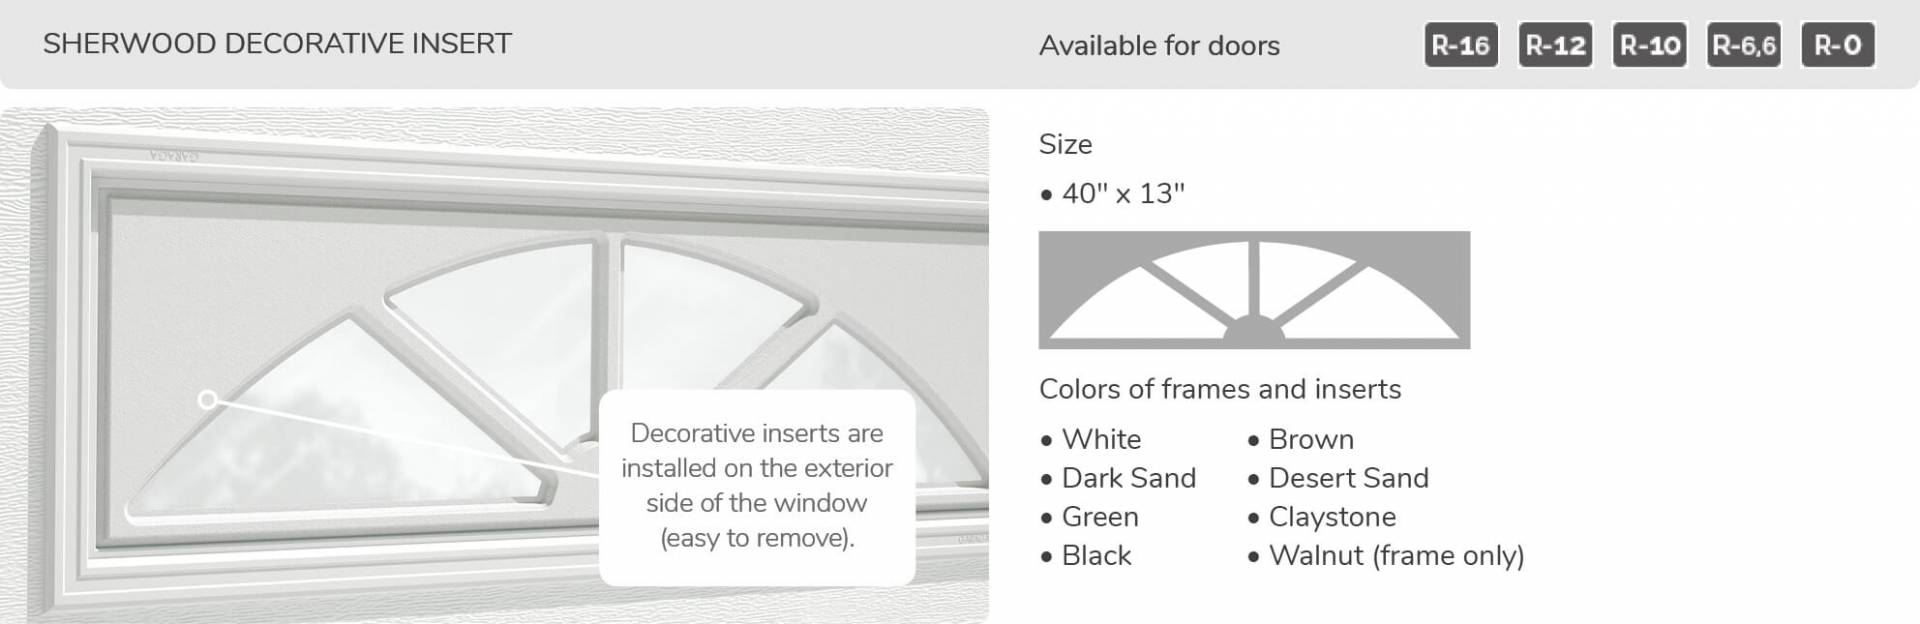 Sherwood Decorative Insert, 40' x 13', available for doors: R-16, R-12, R-10, R-6.6, R-0